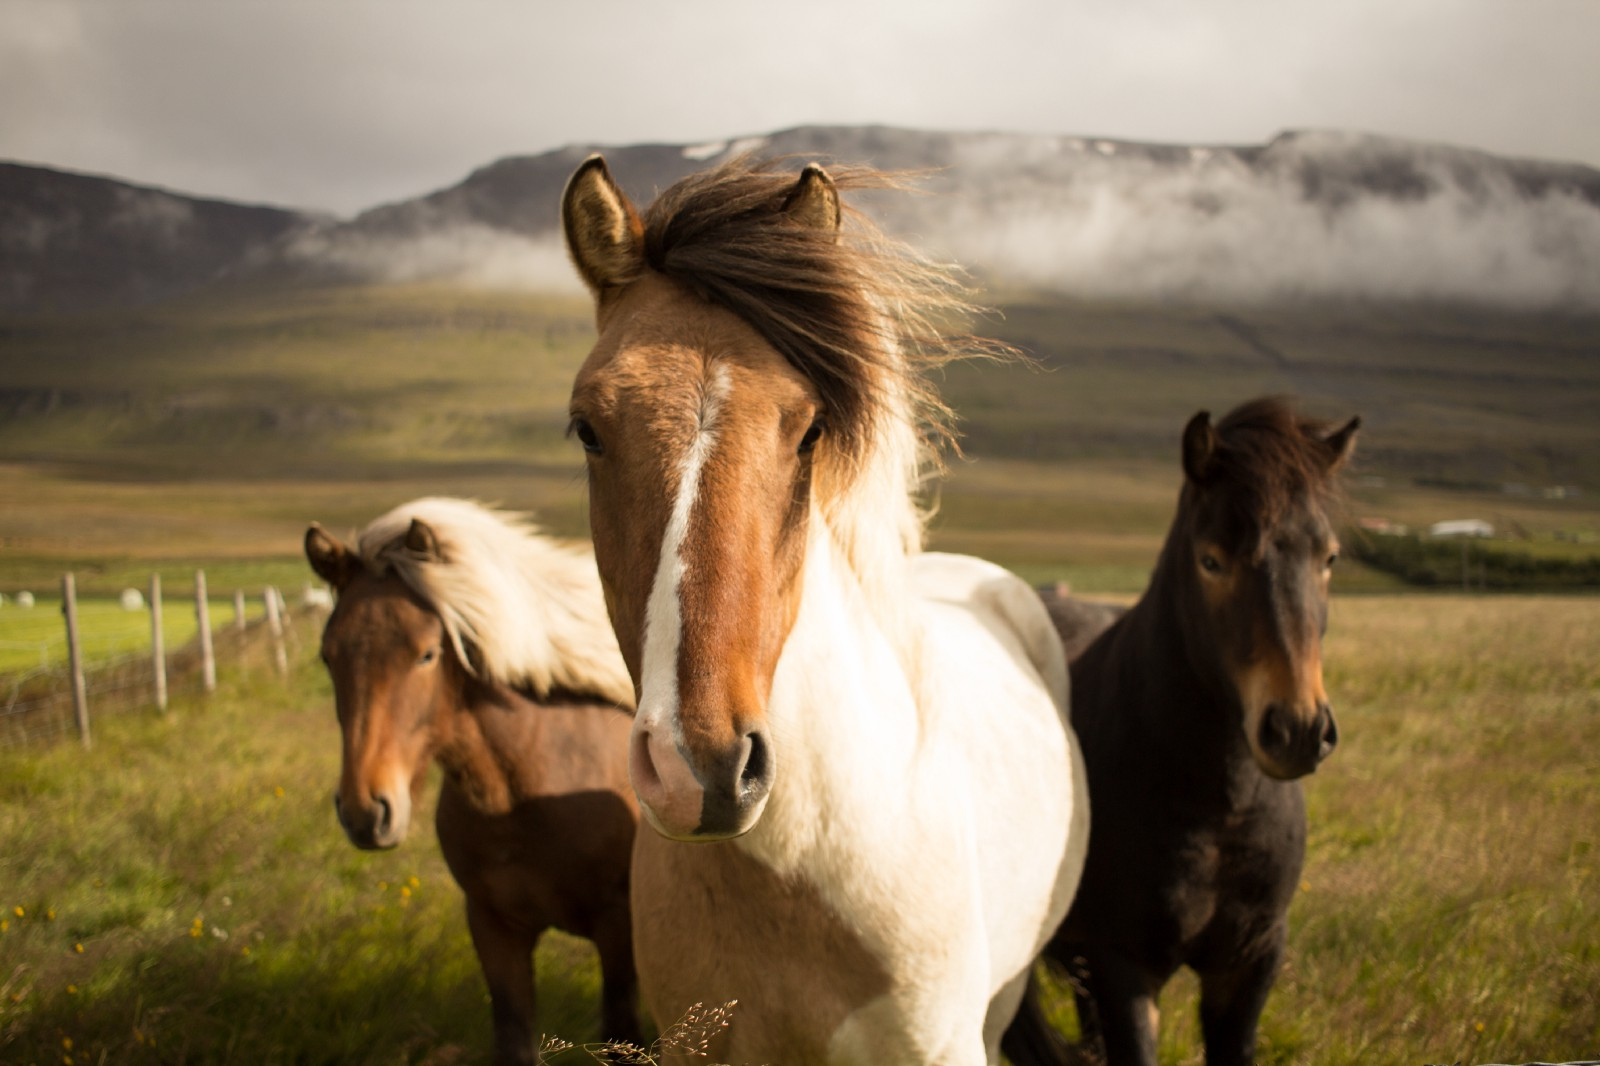 The Horse and two friends in the mist